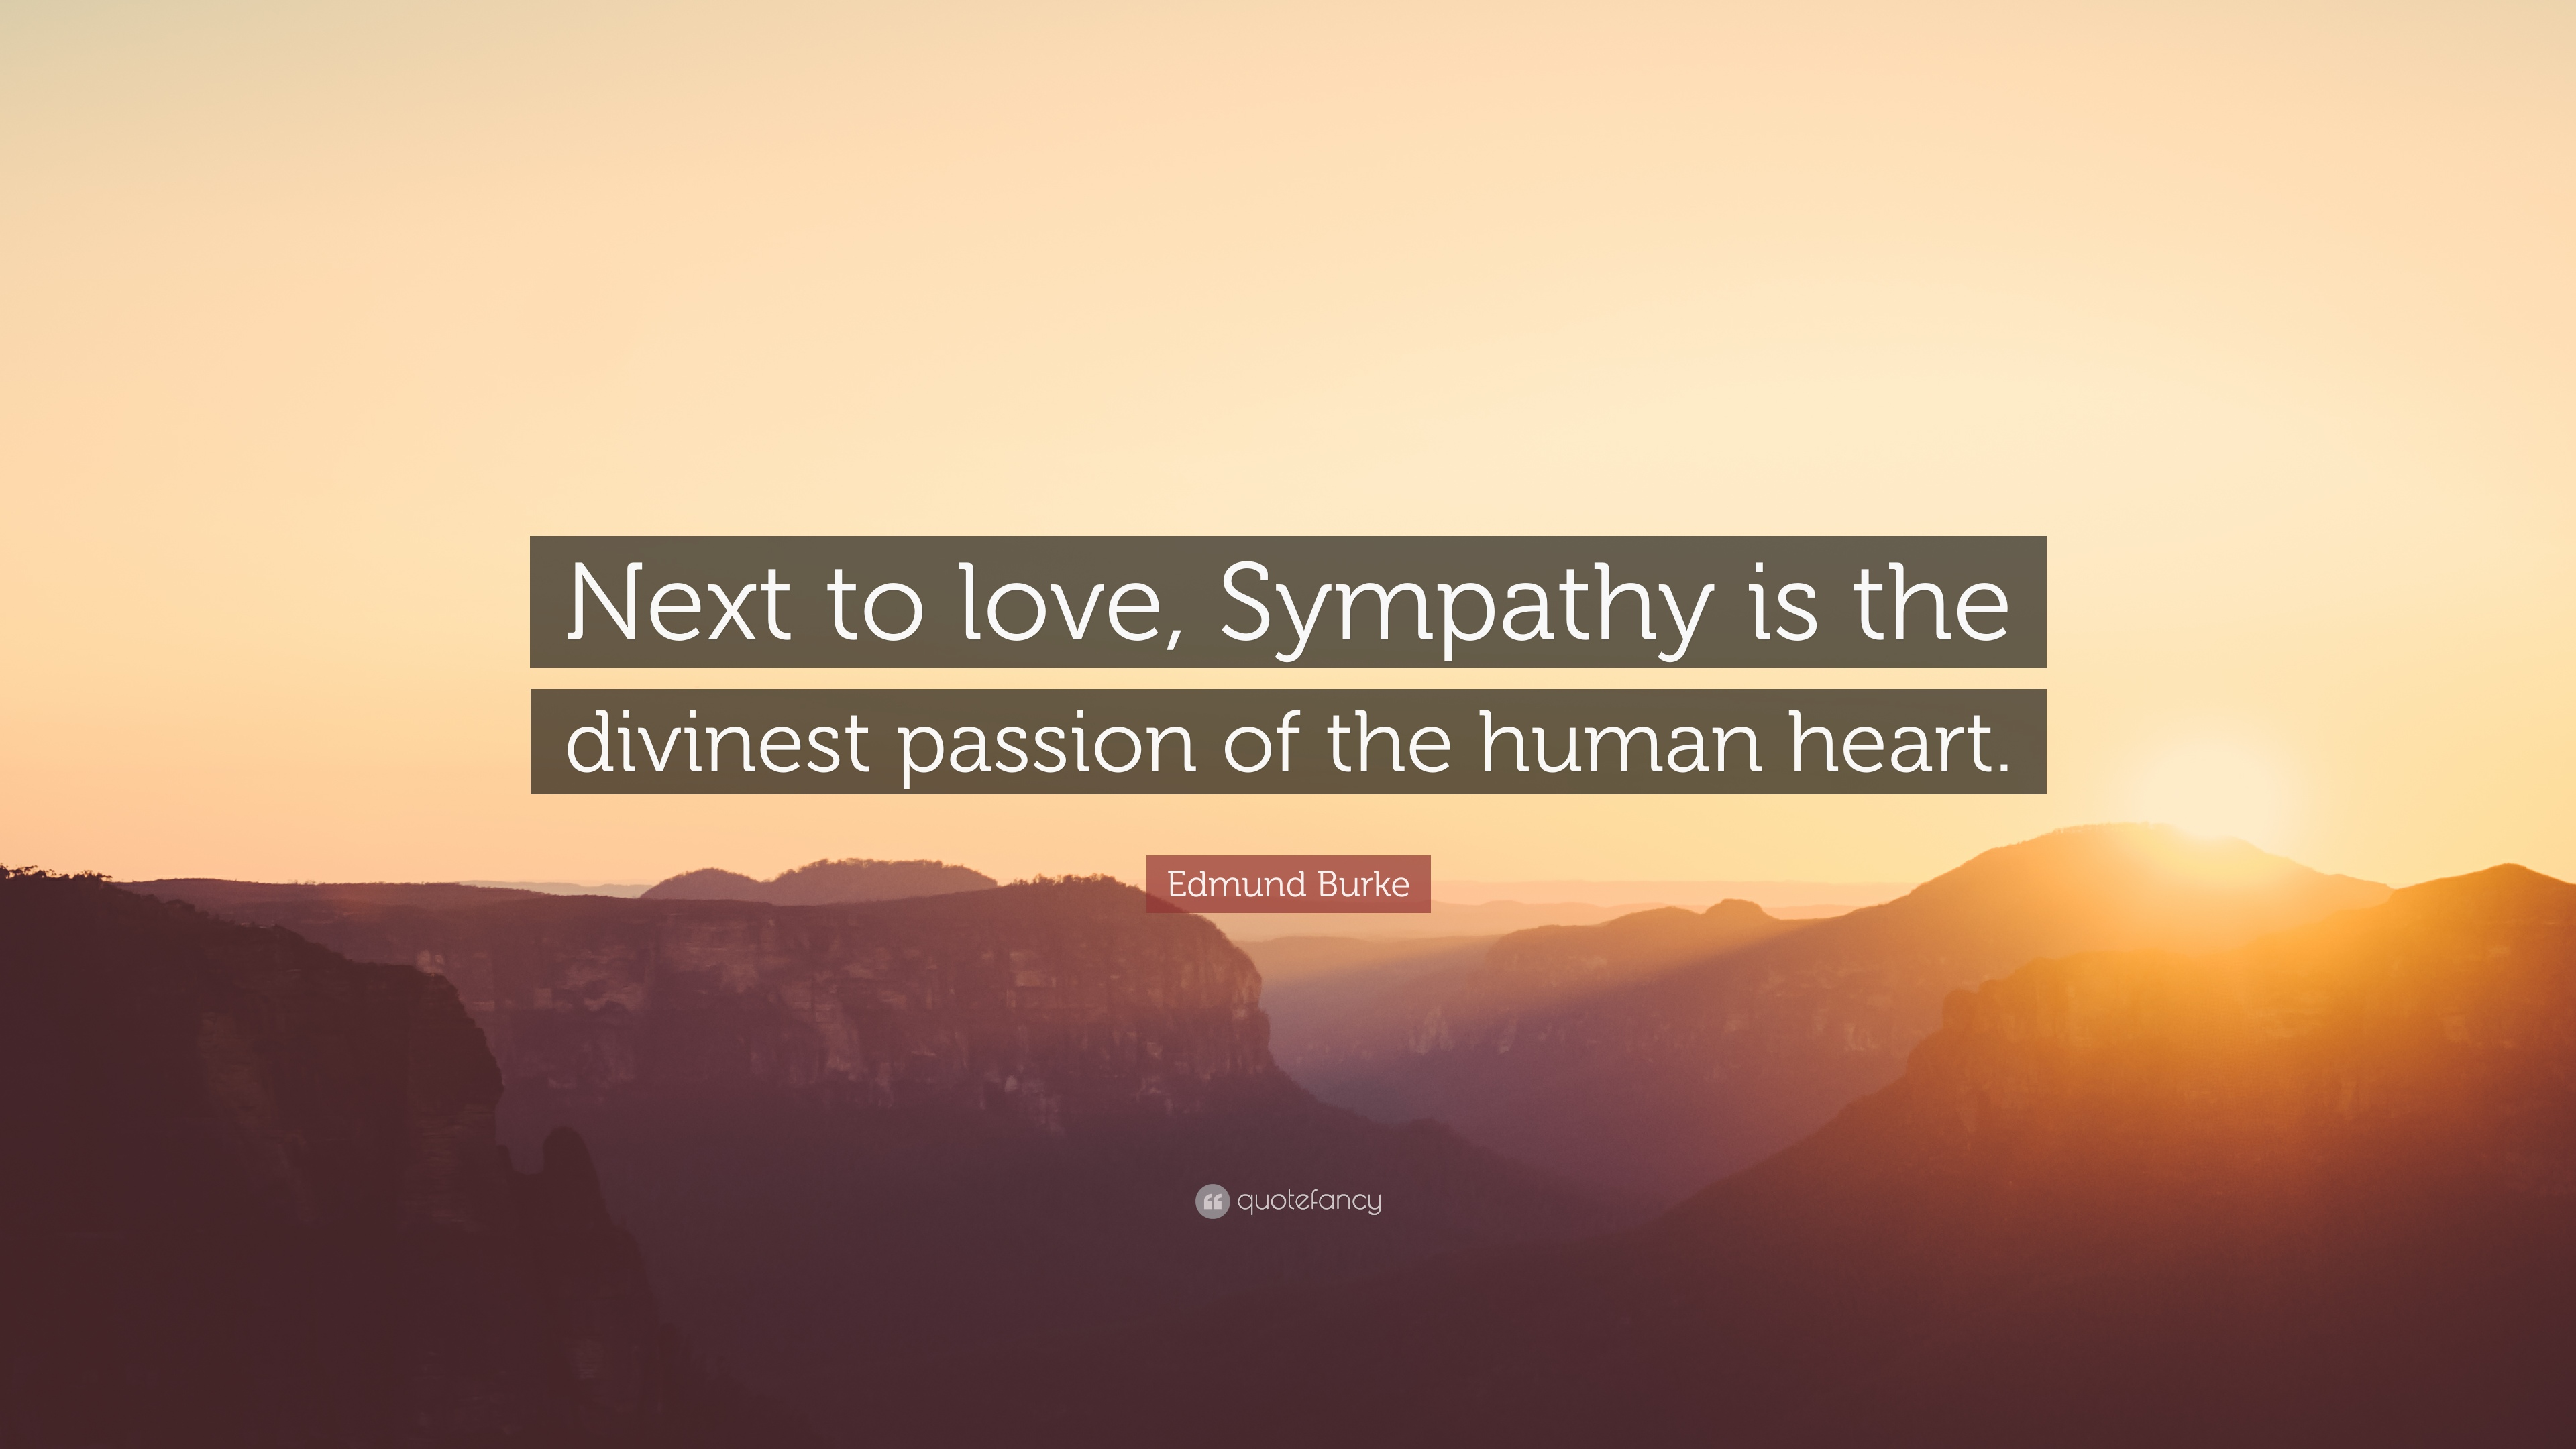 Edmund burke quote next to love sympathy is the divinest passion edmund burke quote next to love sympathy is the divinest passion of the altavistaventures Choice Image